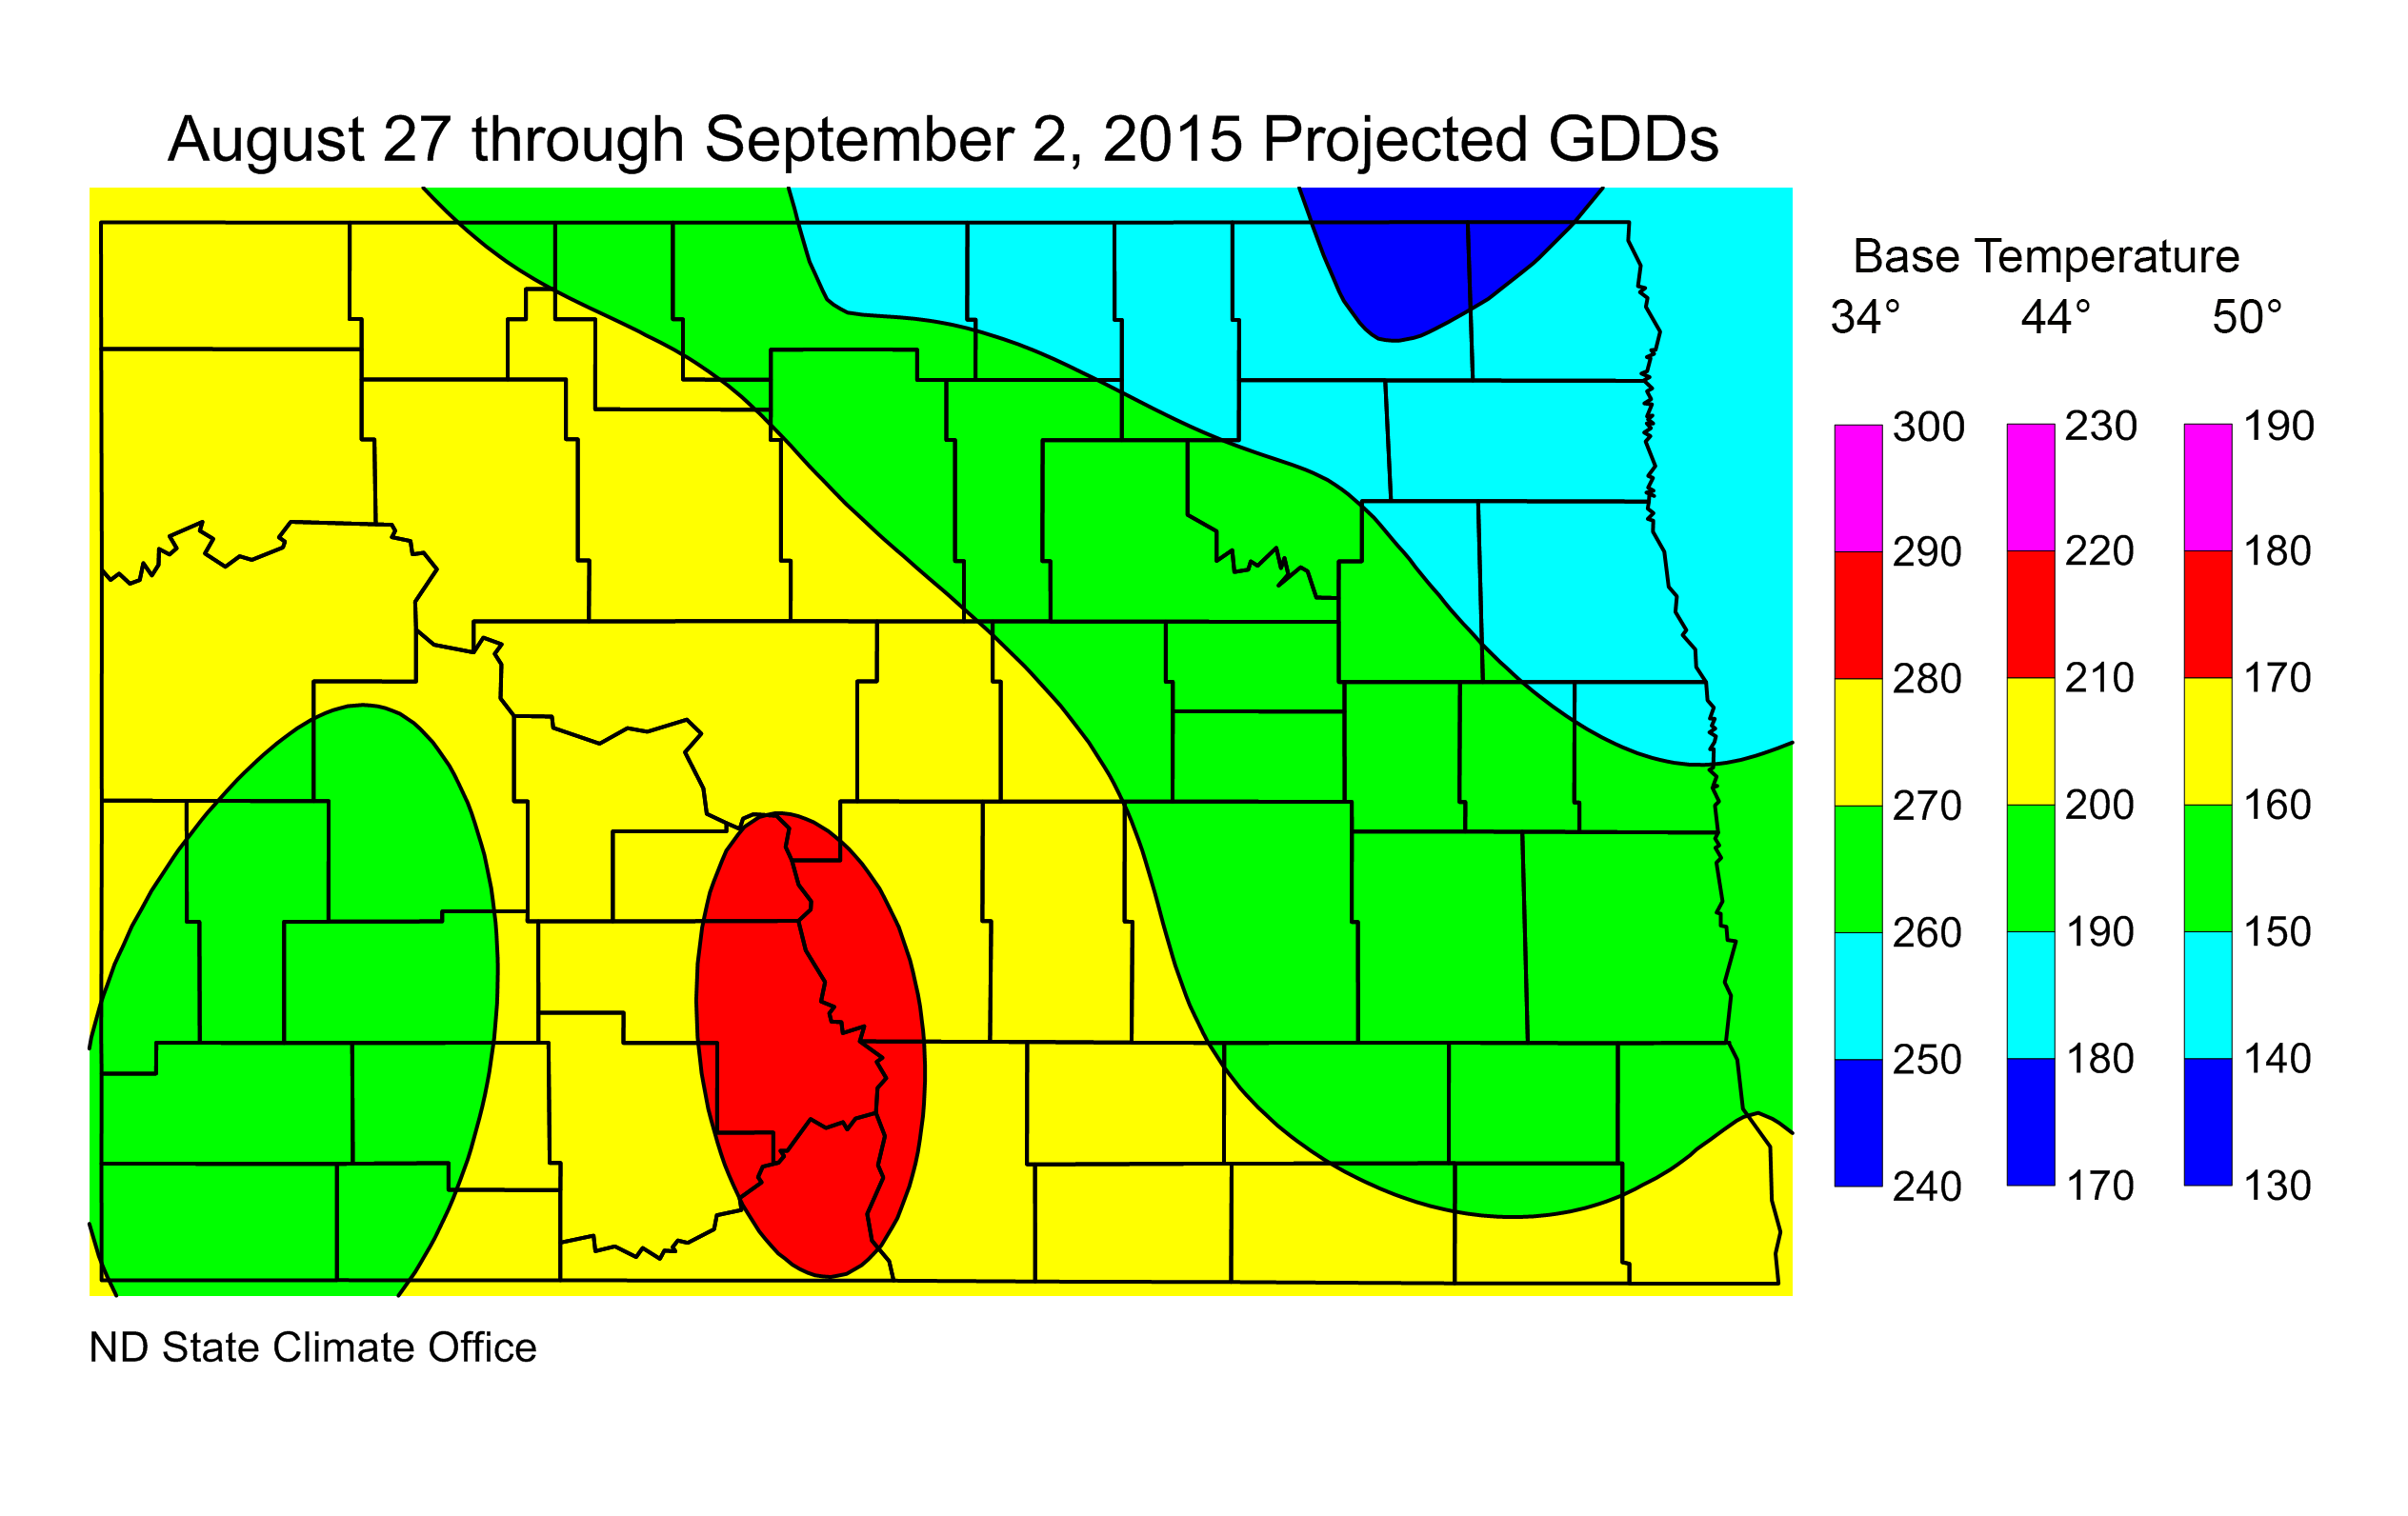 Figure 2. Projected Growing Degree Days from August 27 through September 2, 2015